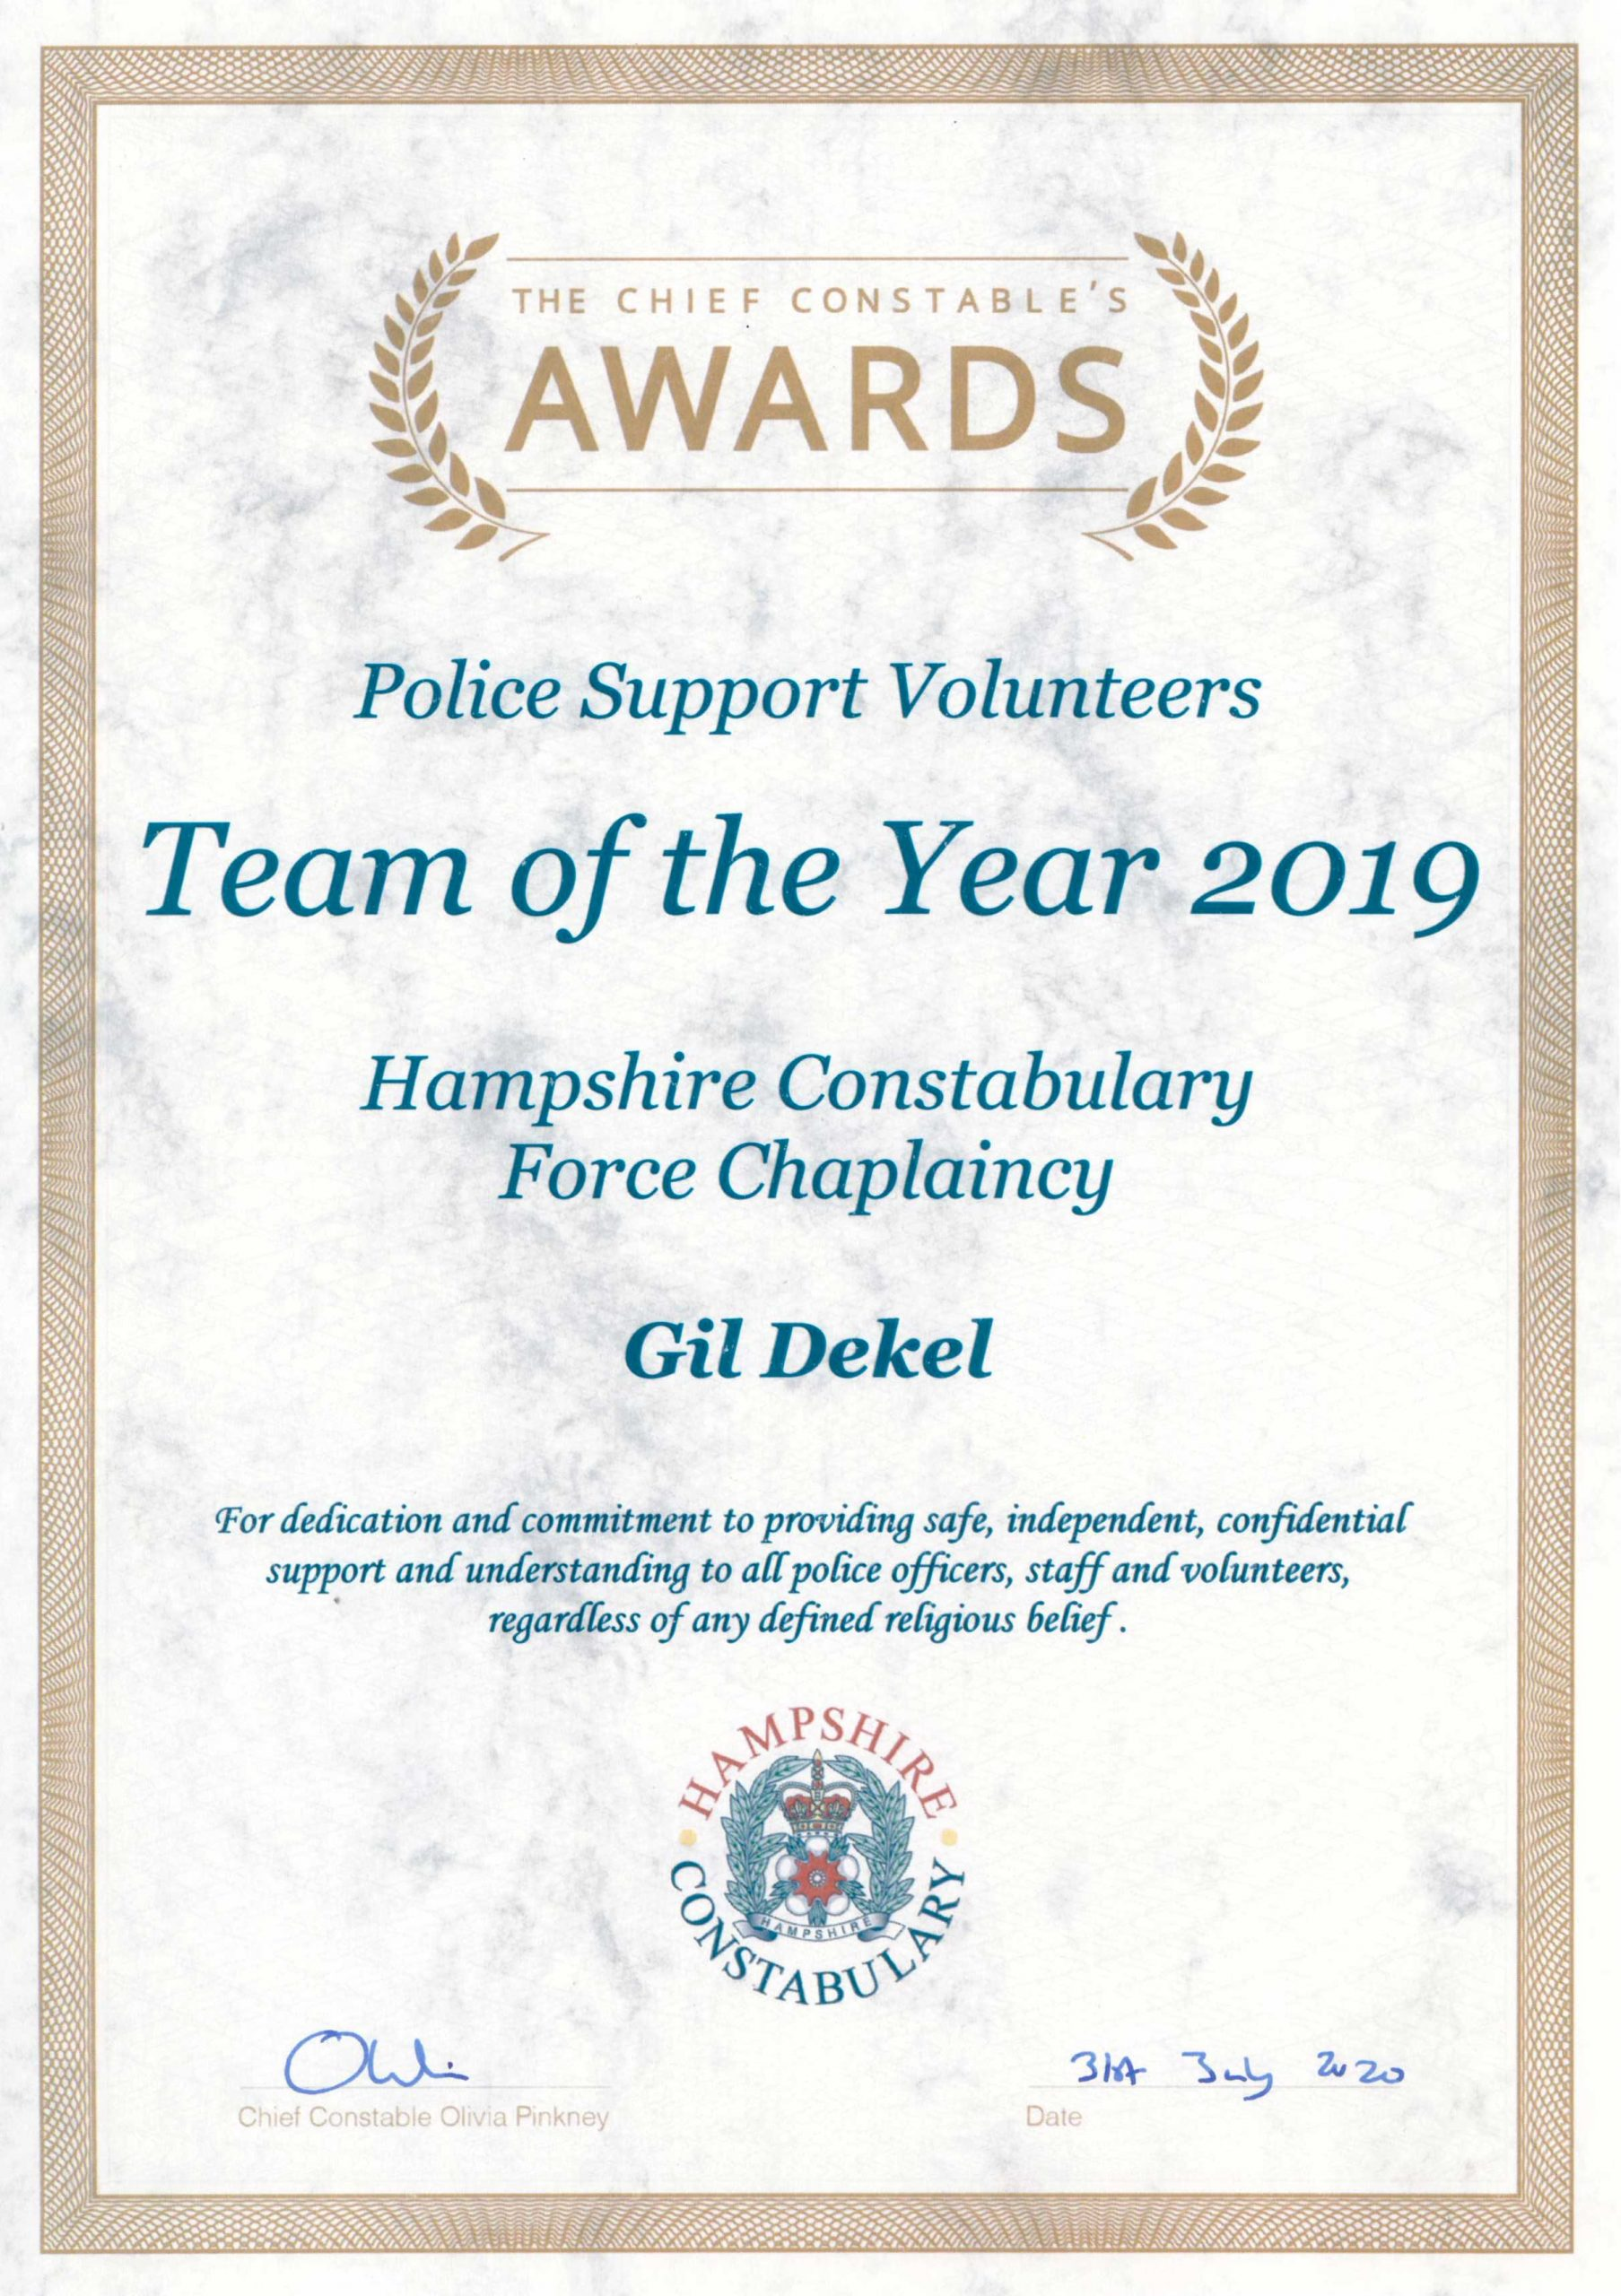 Award: Gil Dekel Police Team award 2019